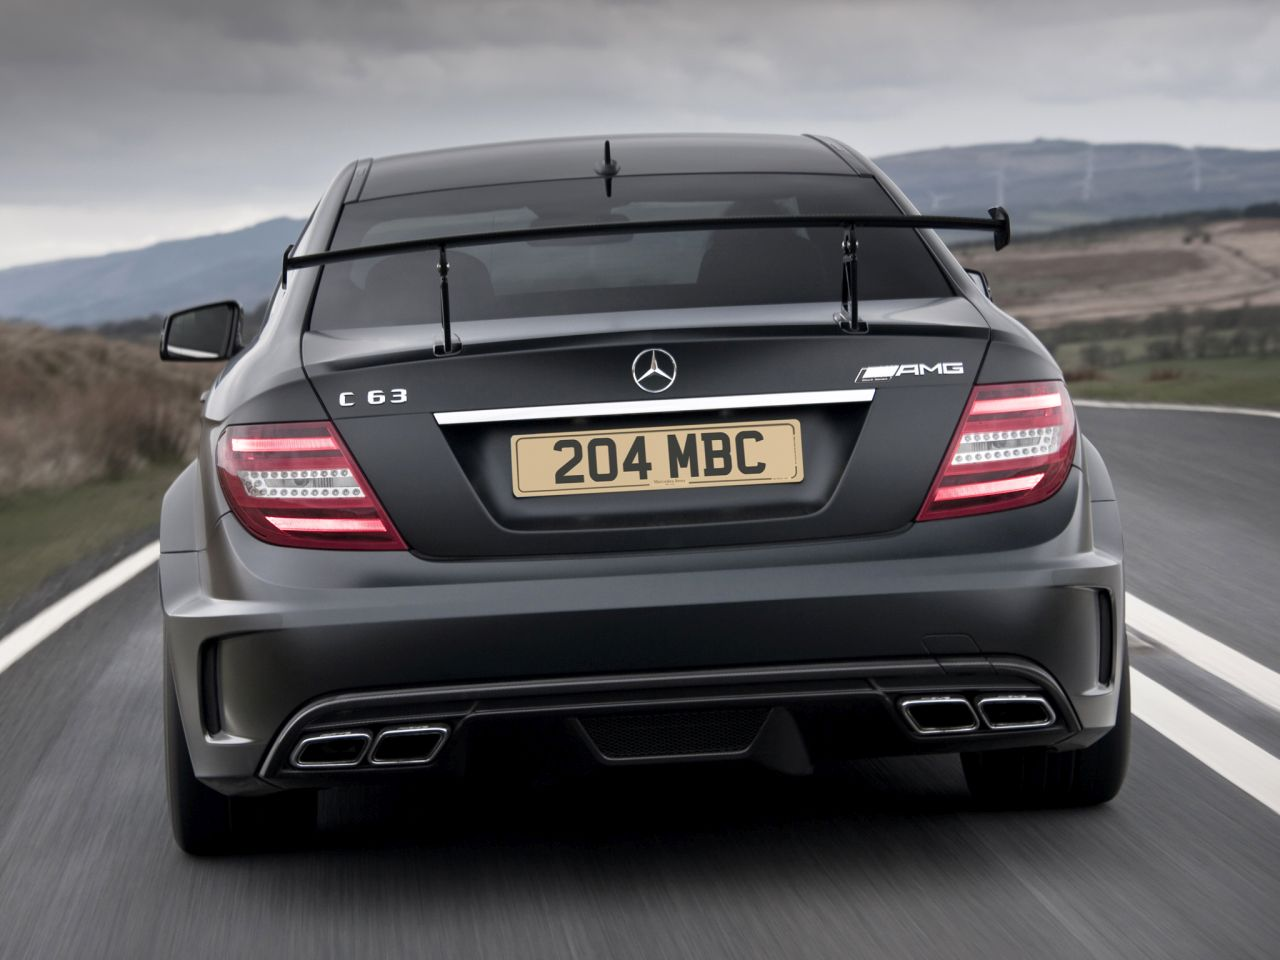 Engine Sound - Mercedes C63 AMG Black Series : Casser la voix 32